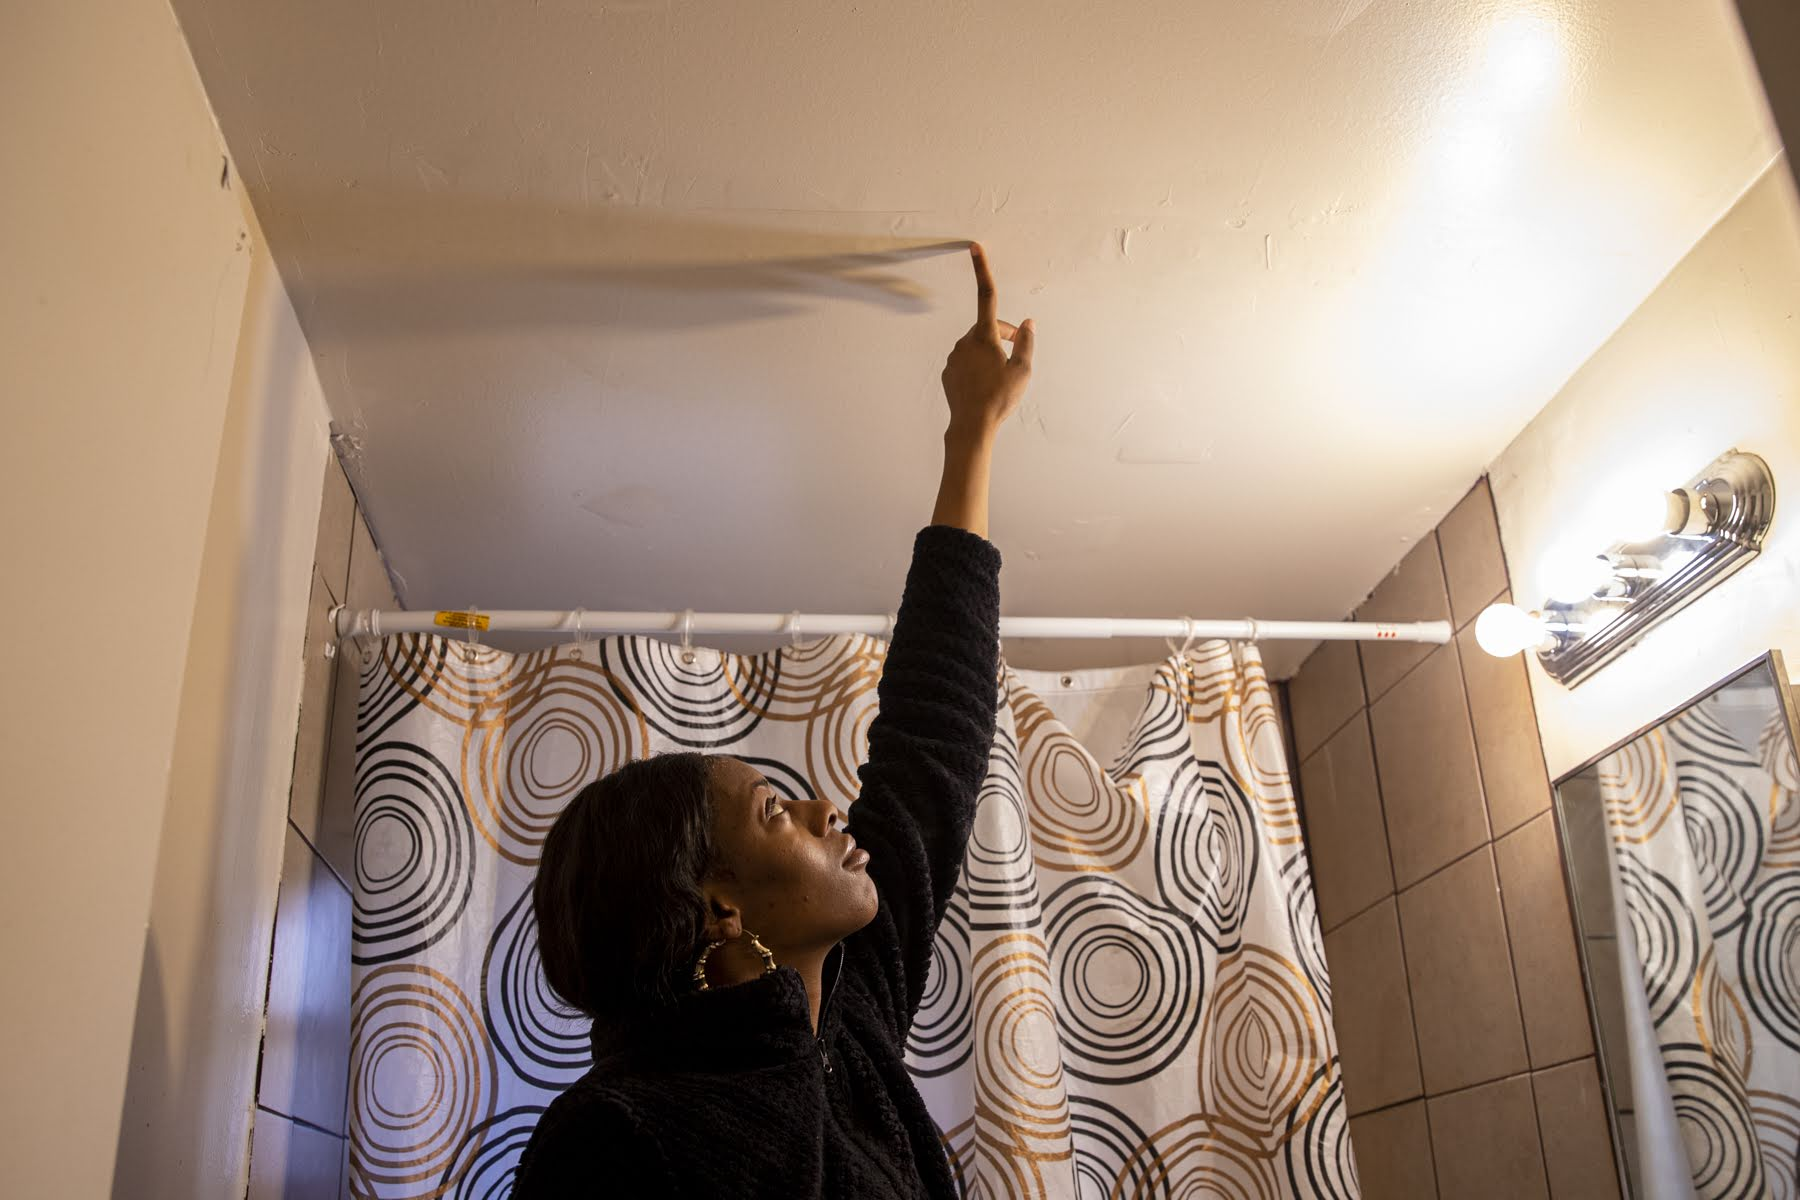 Shanese Nelson pointing to water damage in the bathroom.